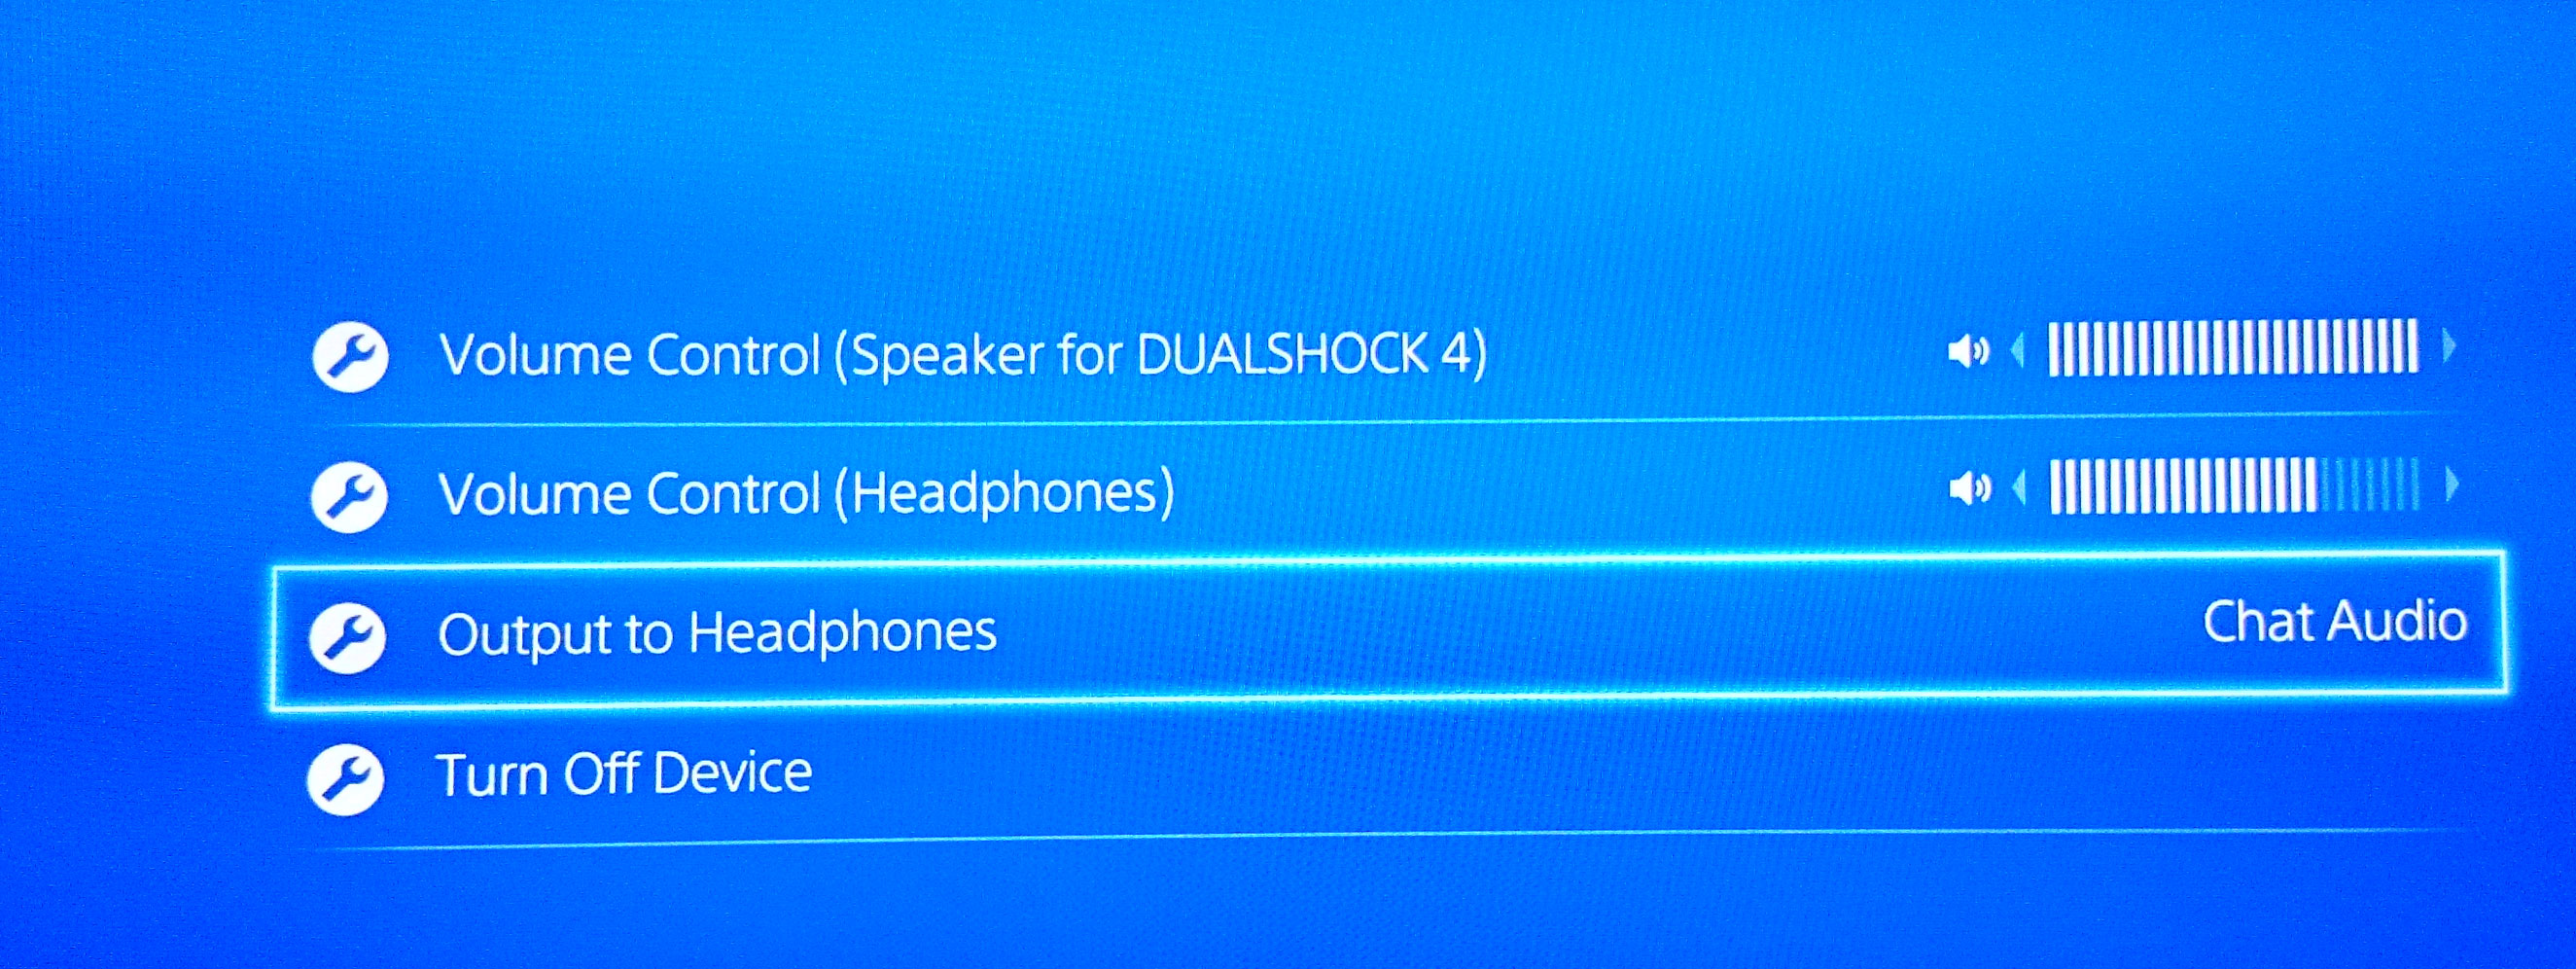 Ps4 How To Output All Audio Headphones Plugged Into Dualshock 4 Mono Headset Microphone Jack Wiring Options